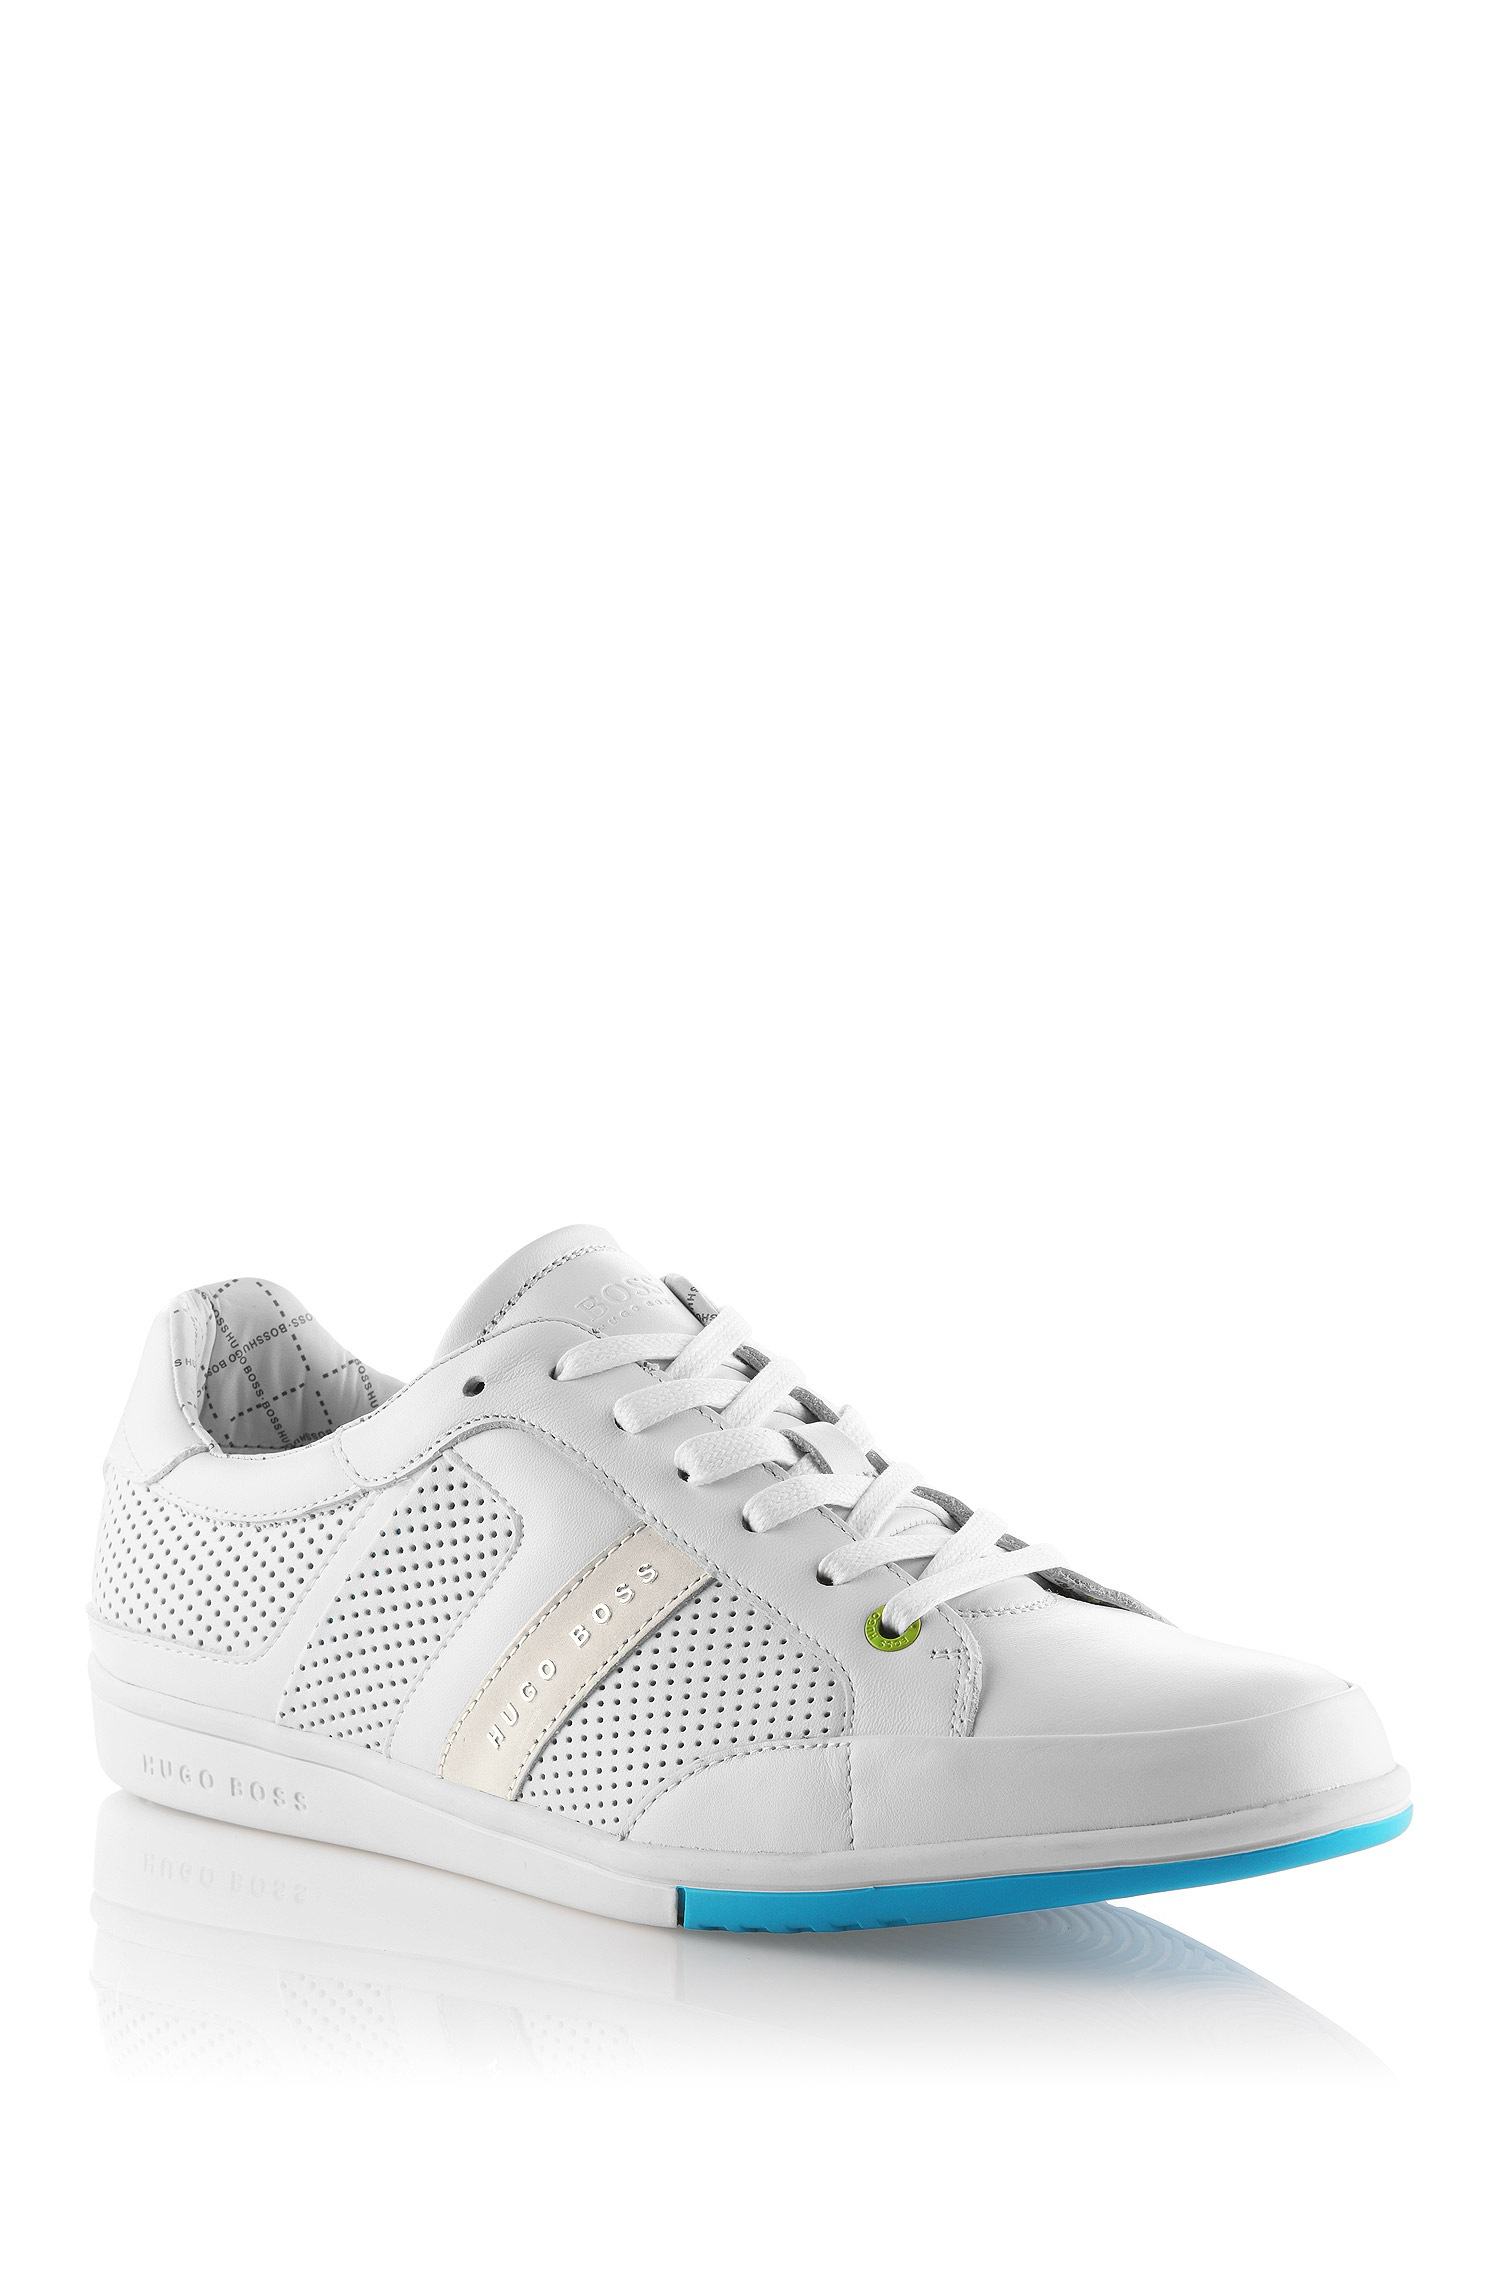 f97b8f22894 BOSS Green Leather Sneaker Eldorado Clay in White for Men - Lyst